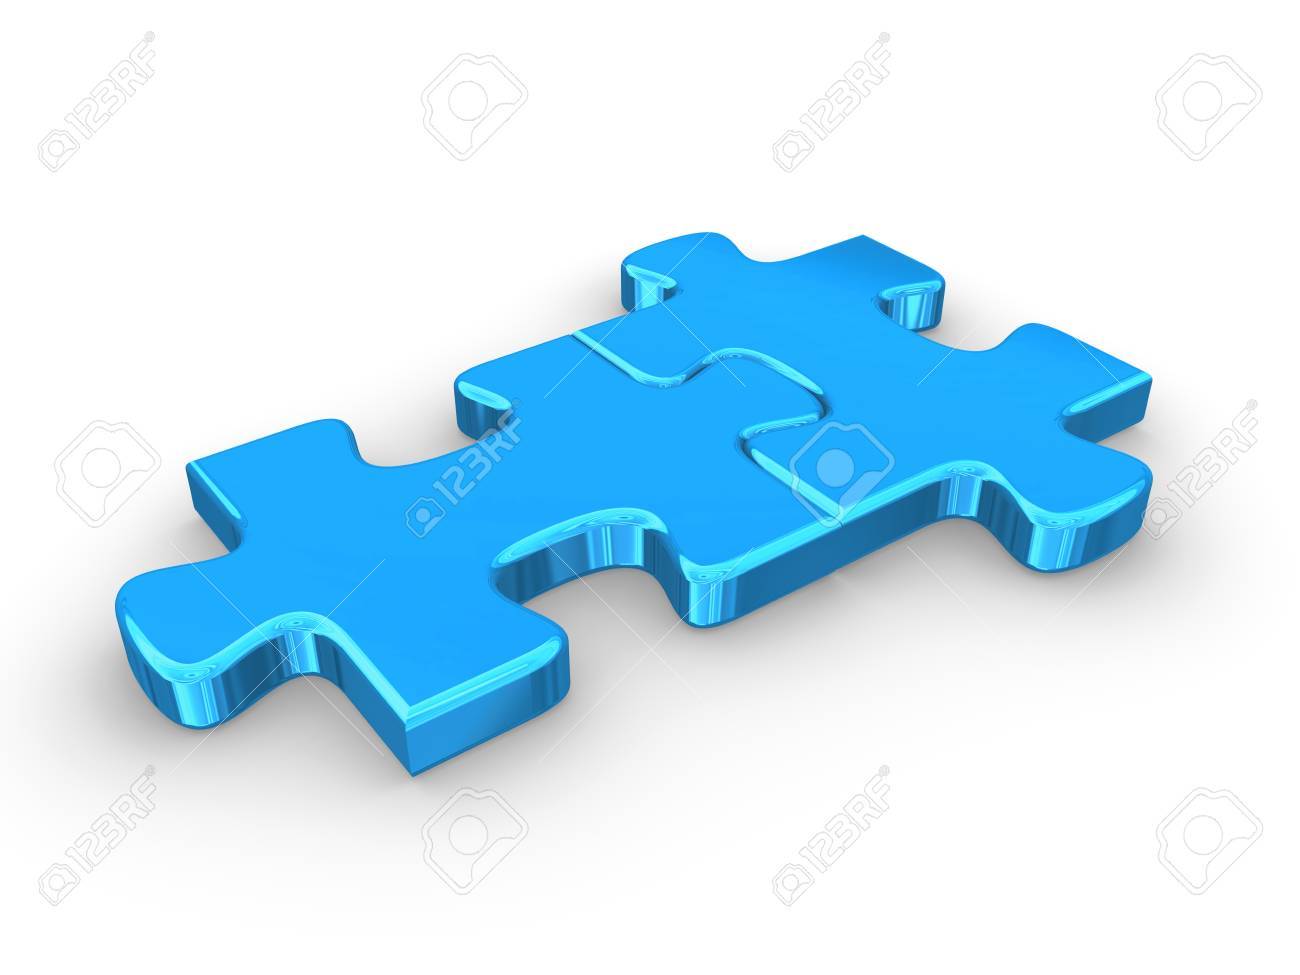 2 Connected Blue Puzzle Pieces 3d Rendered Illustration Stock